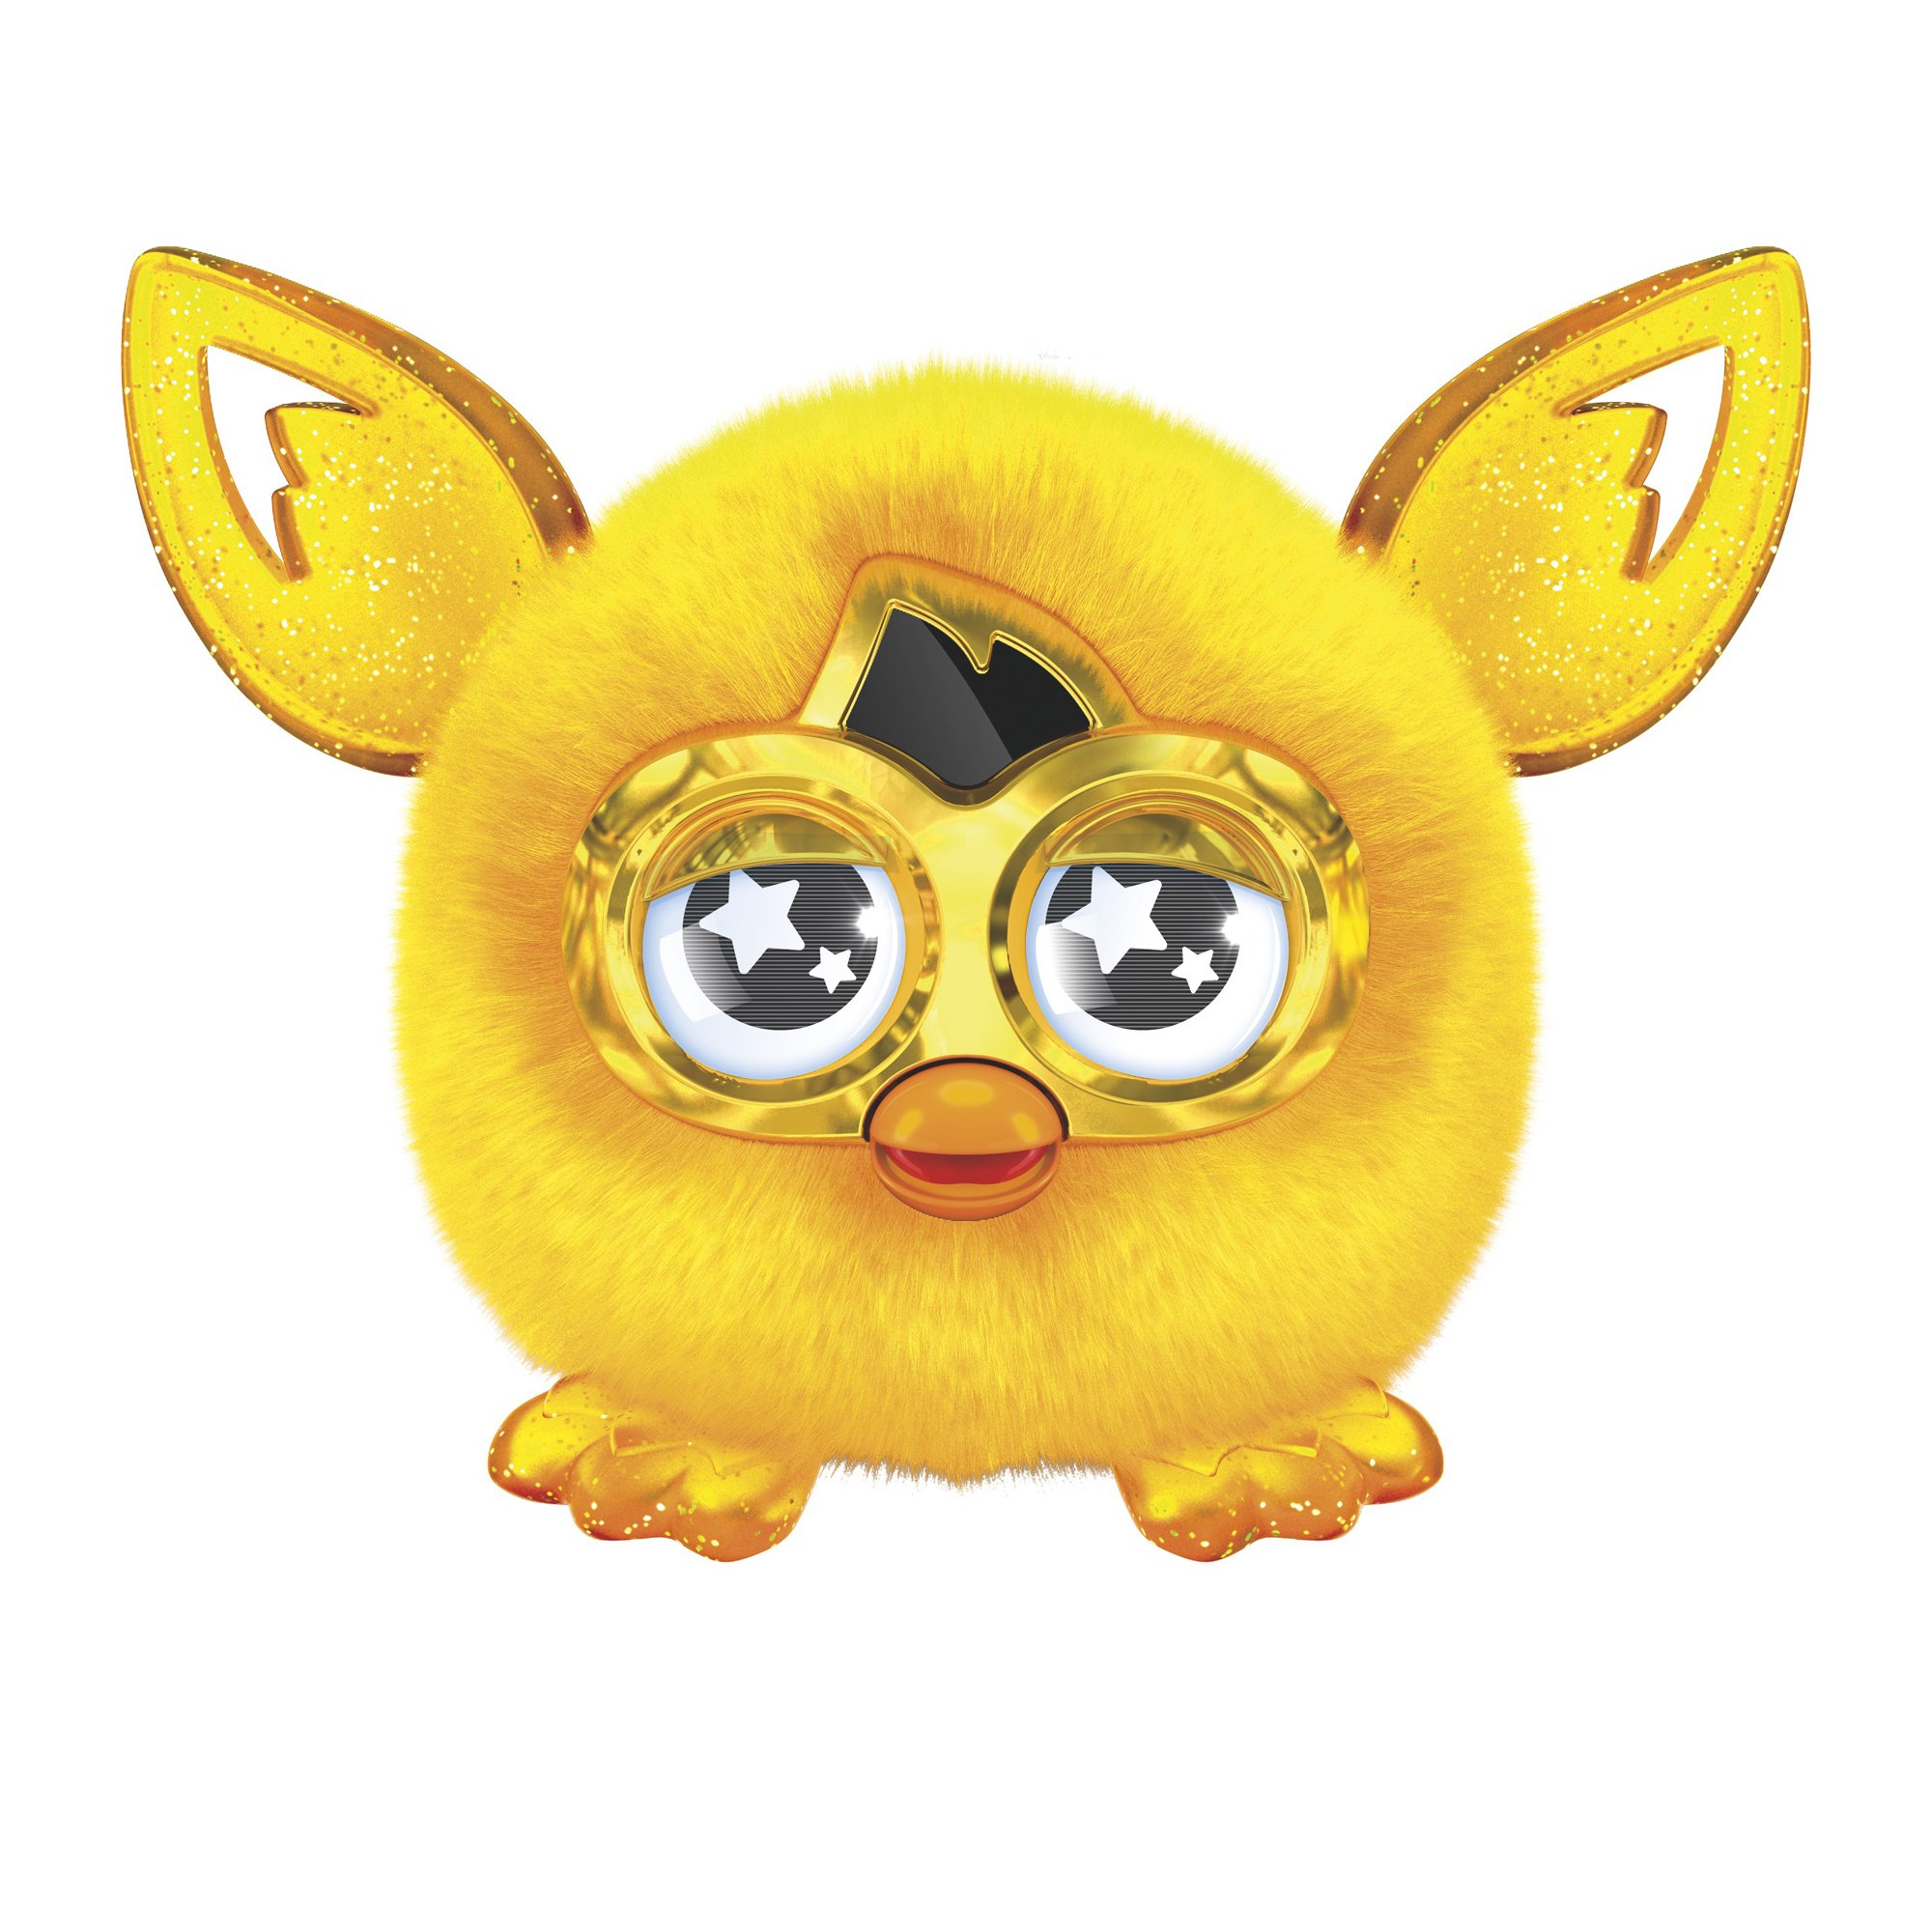 Furby Furbling Creature Plush, Special Edition by Furby (Image #1)